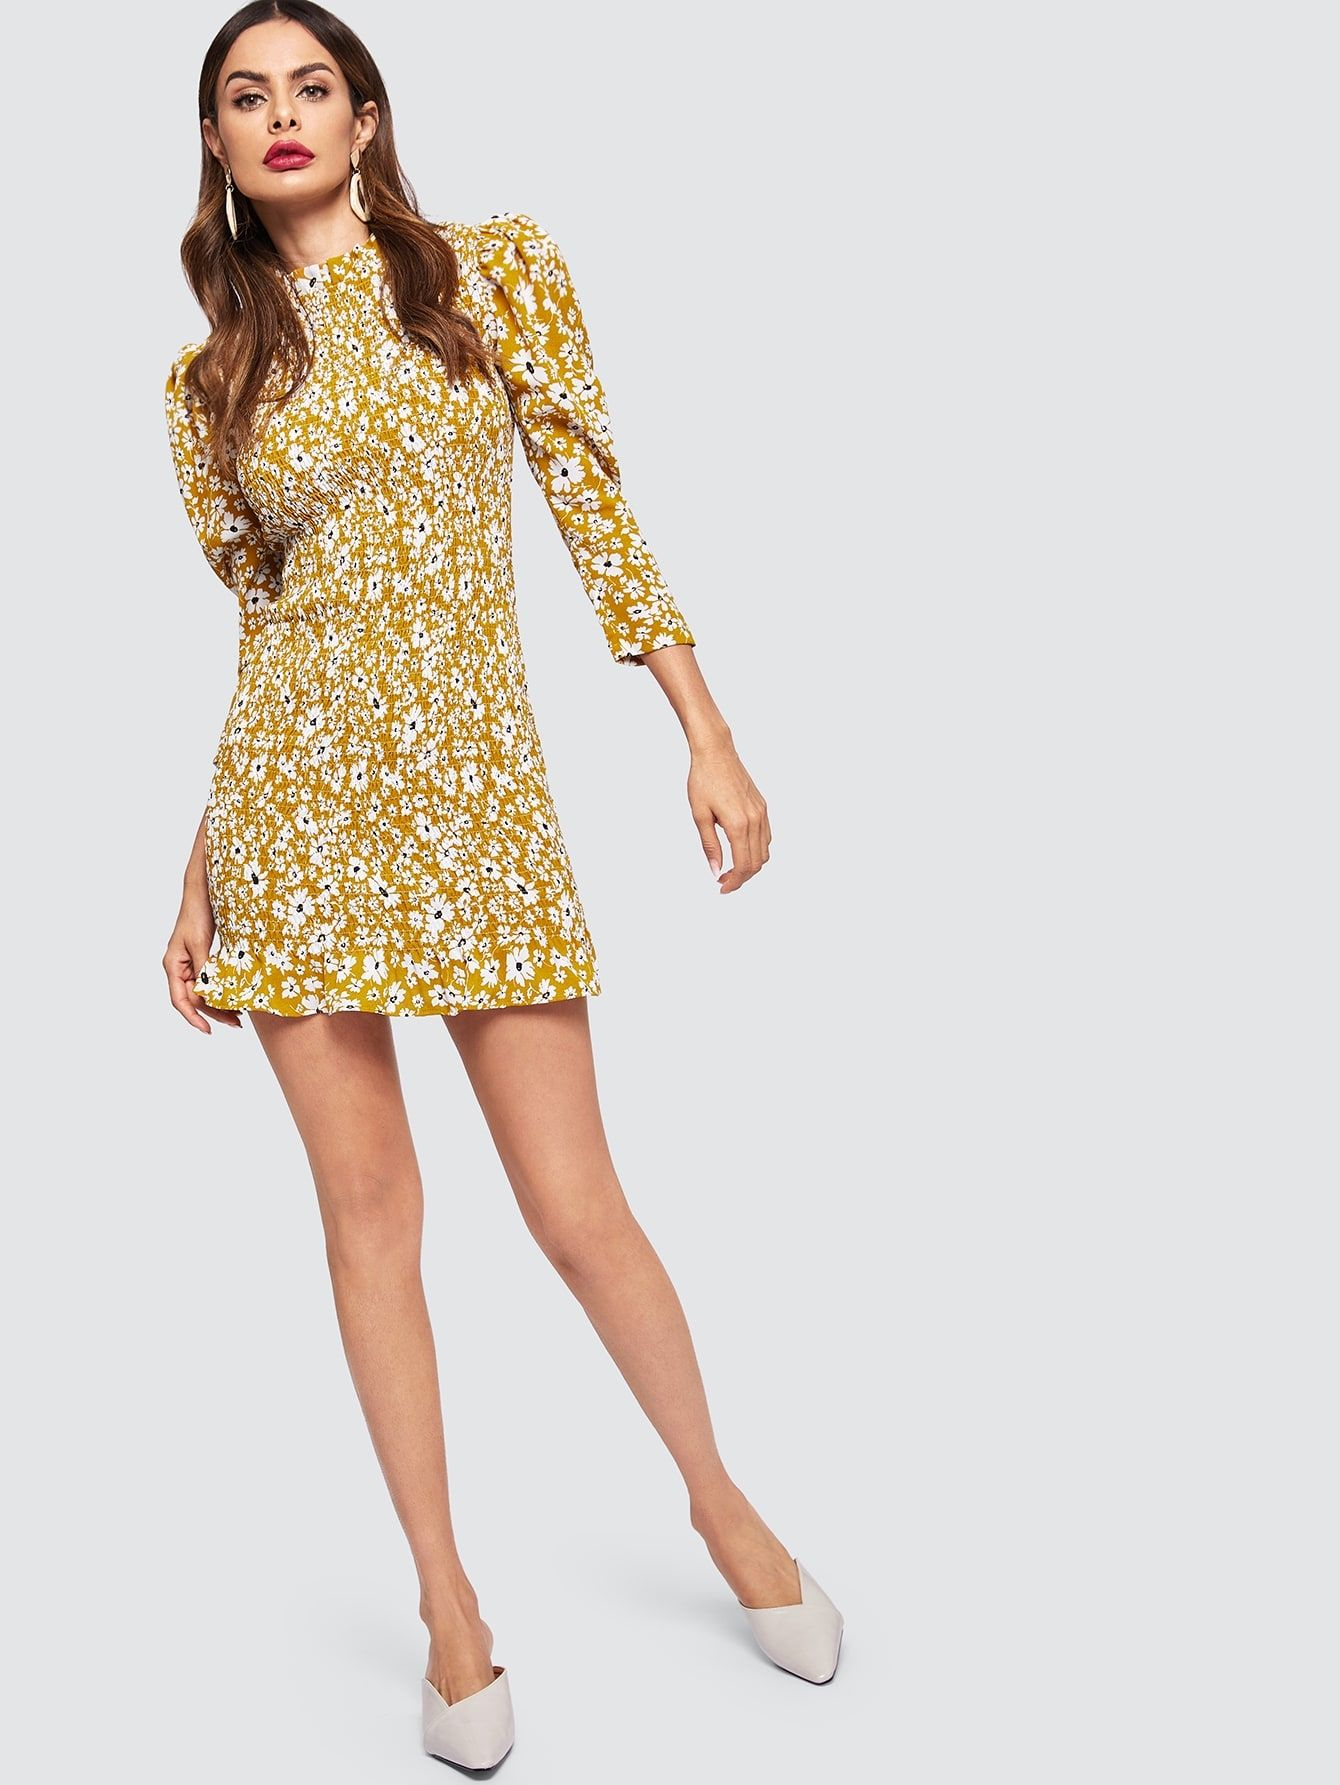 940307ea91 Casual Sheath Stand Collar Long Sleeve Natural Ginger Short Length Frilled  Neckline Puff Sleeve Shirred Floral Dress